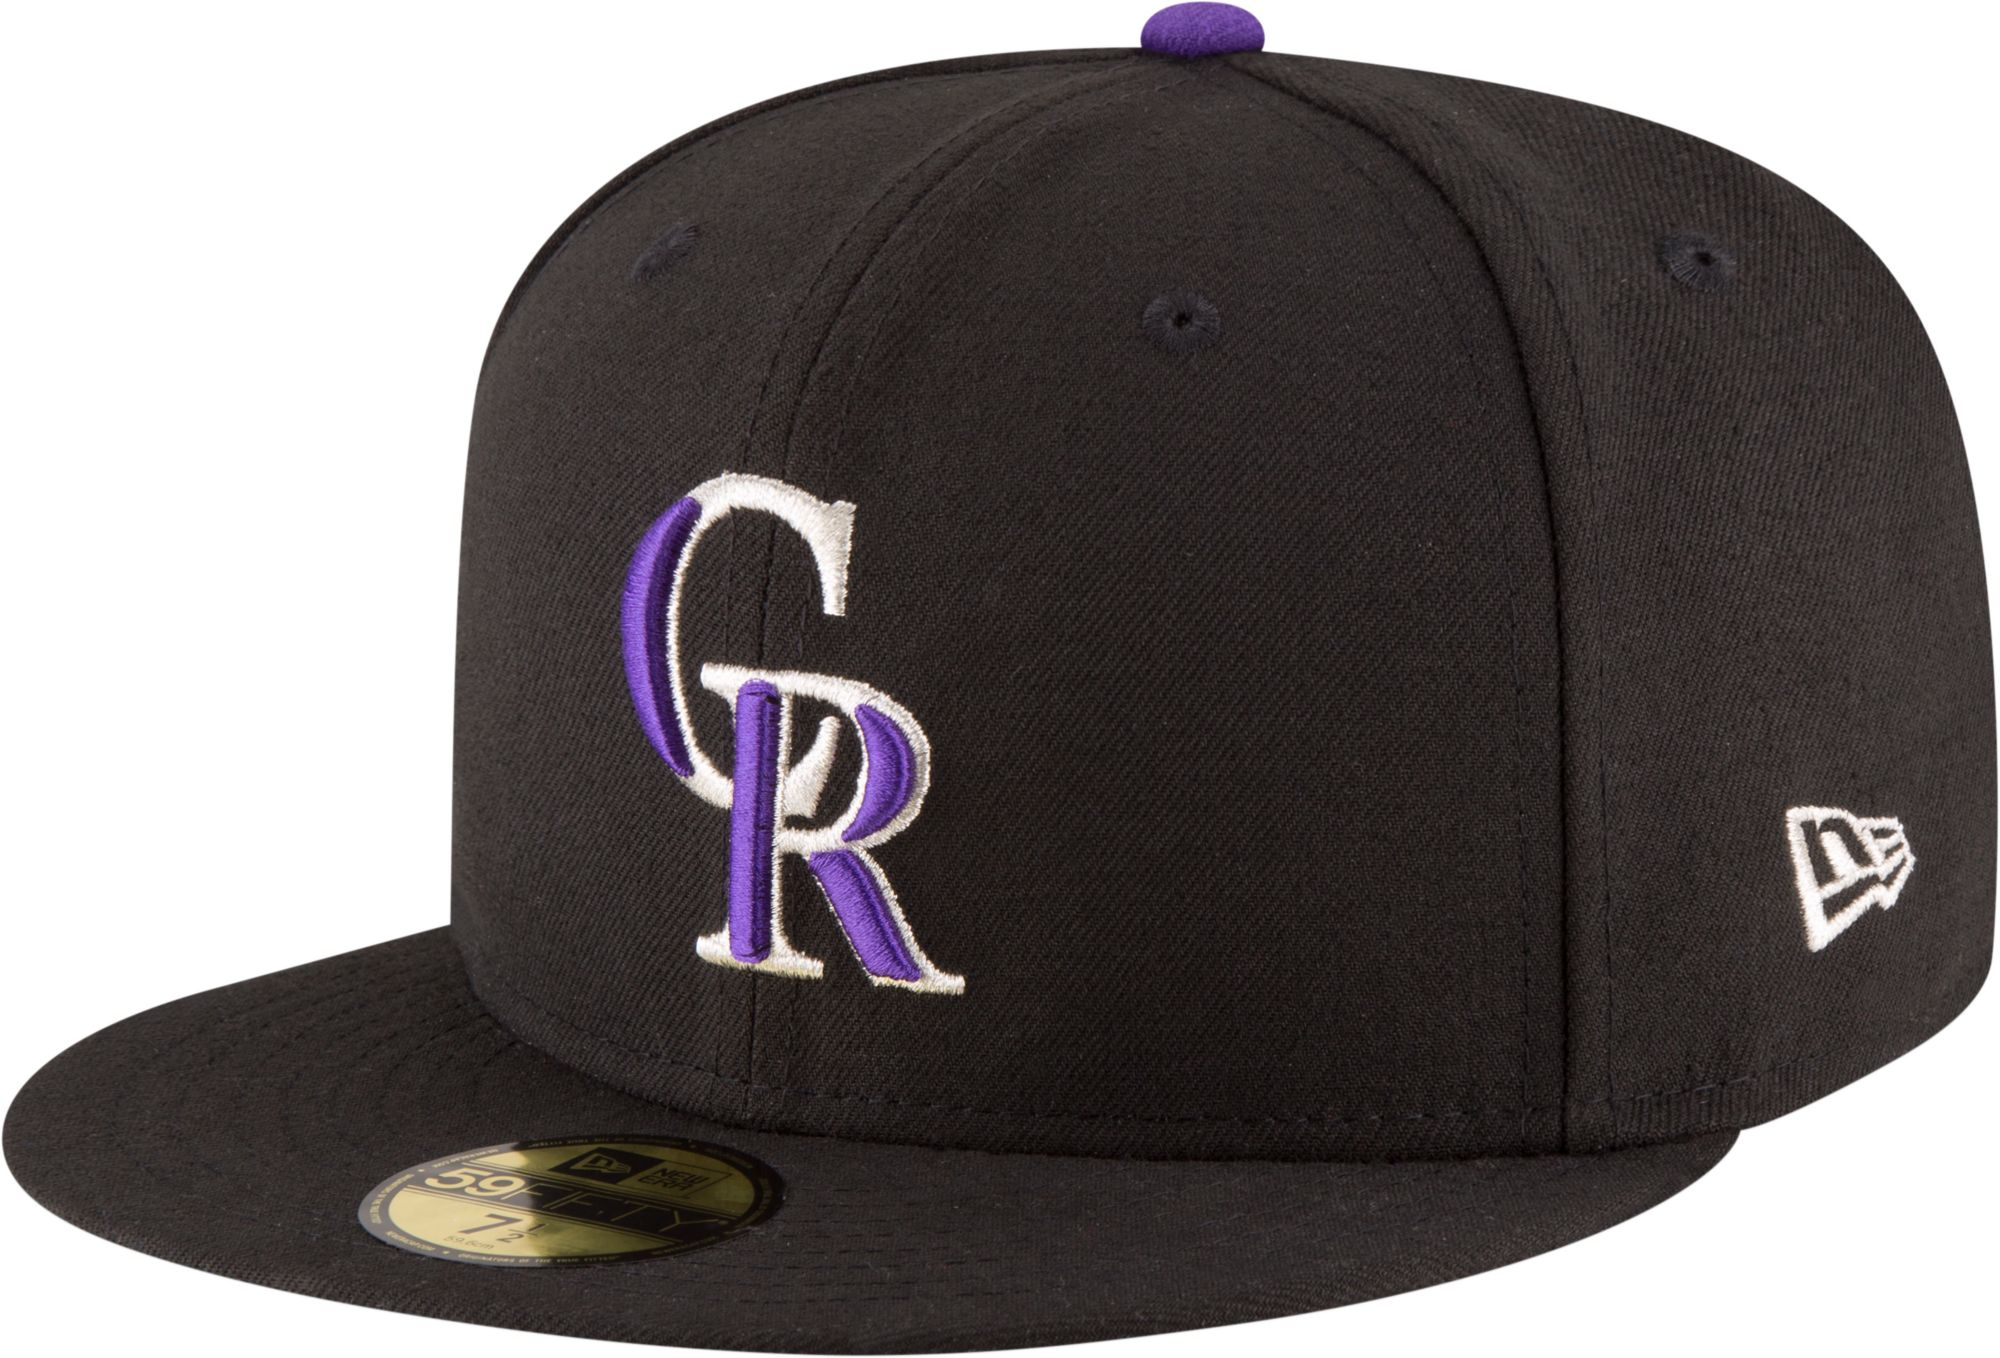 official photos ab15c 86960 ... team classic 39thirty flex hat 9a5d7 5223b authentic new era mens  colorado rockies 59fifty game black authentic hat 3ab8a 0737f ...